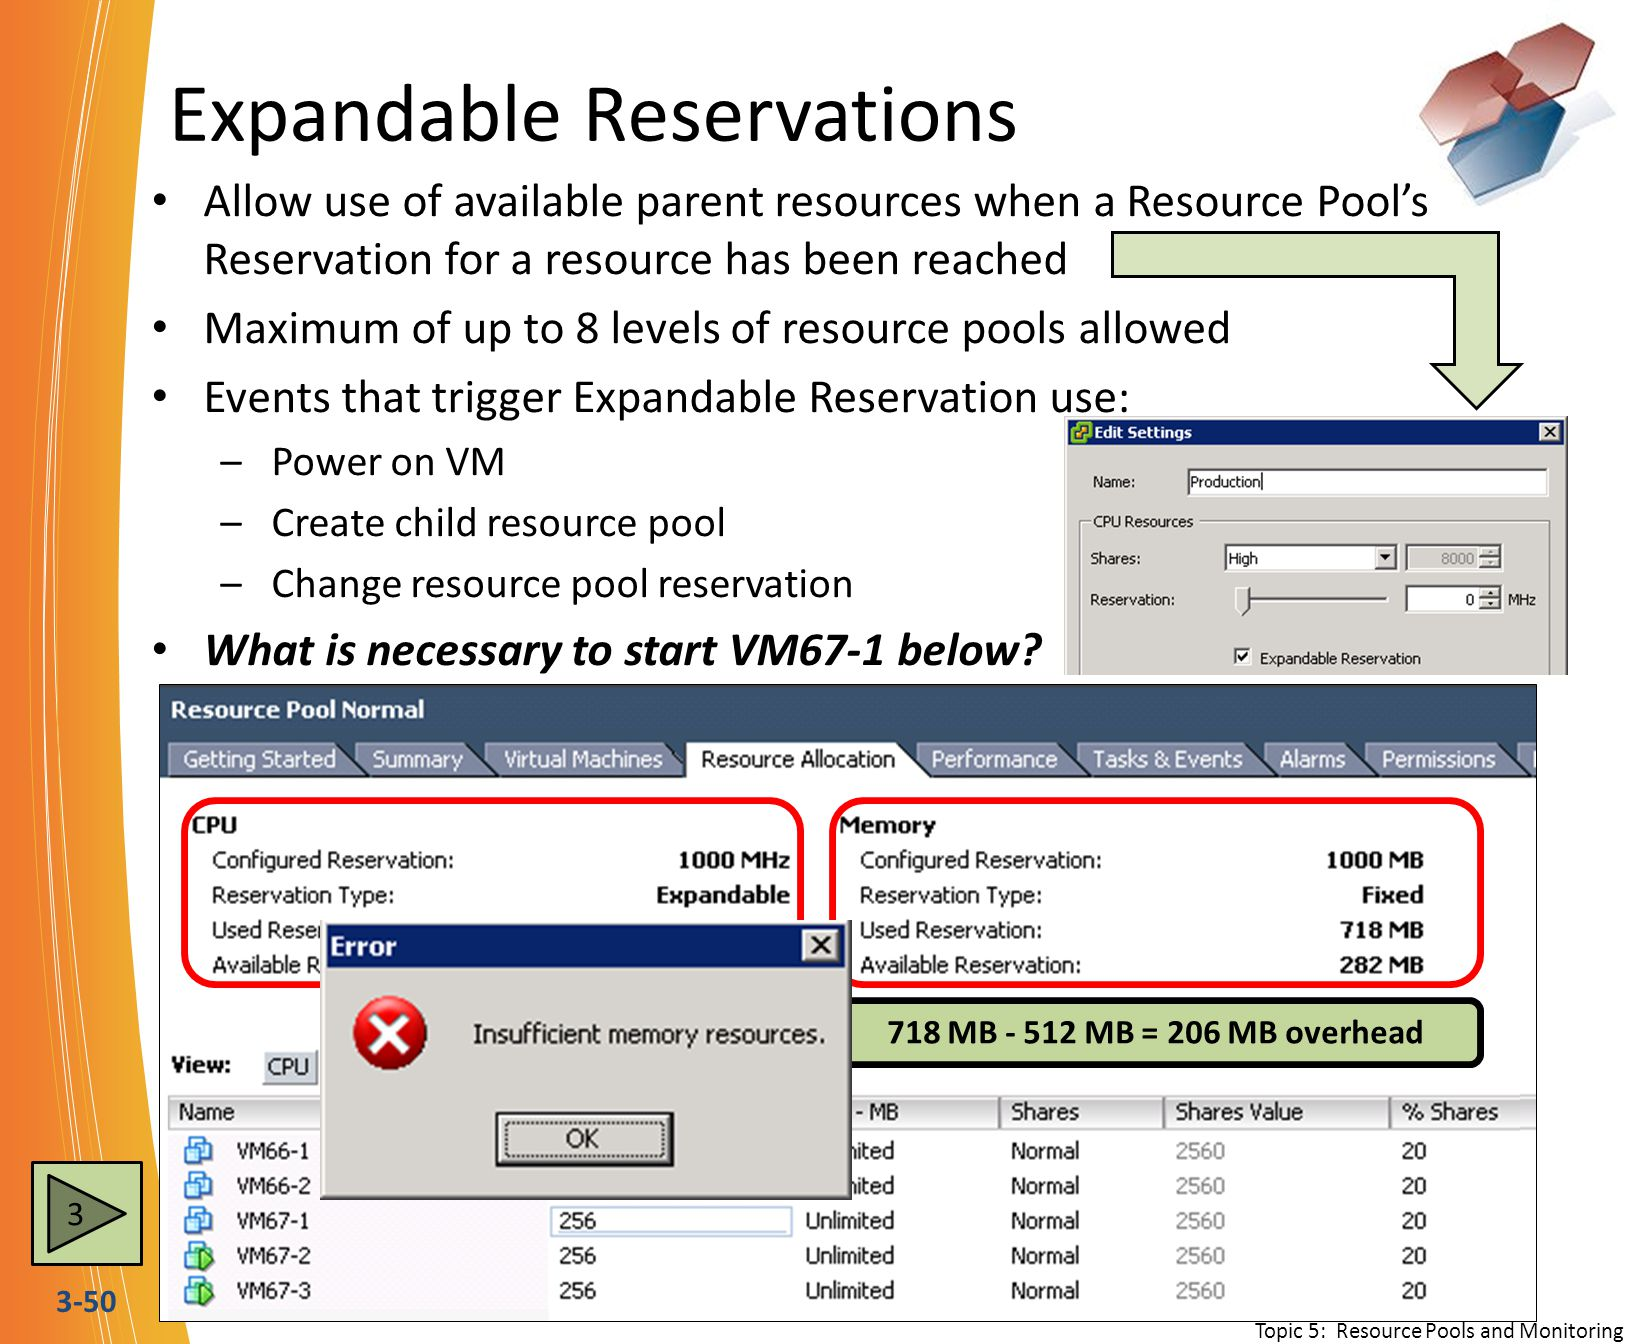 Expandable Reservations